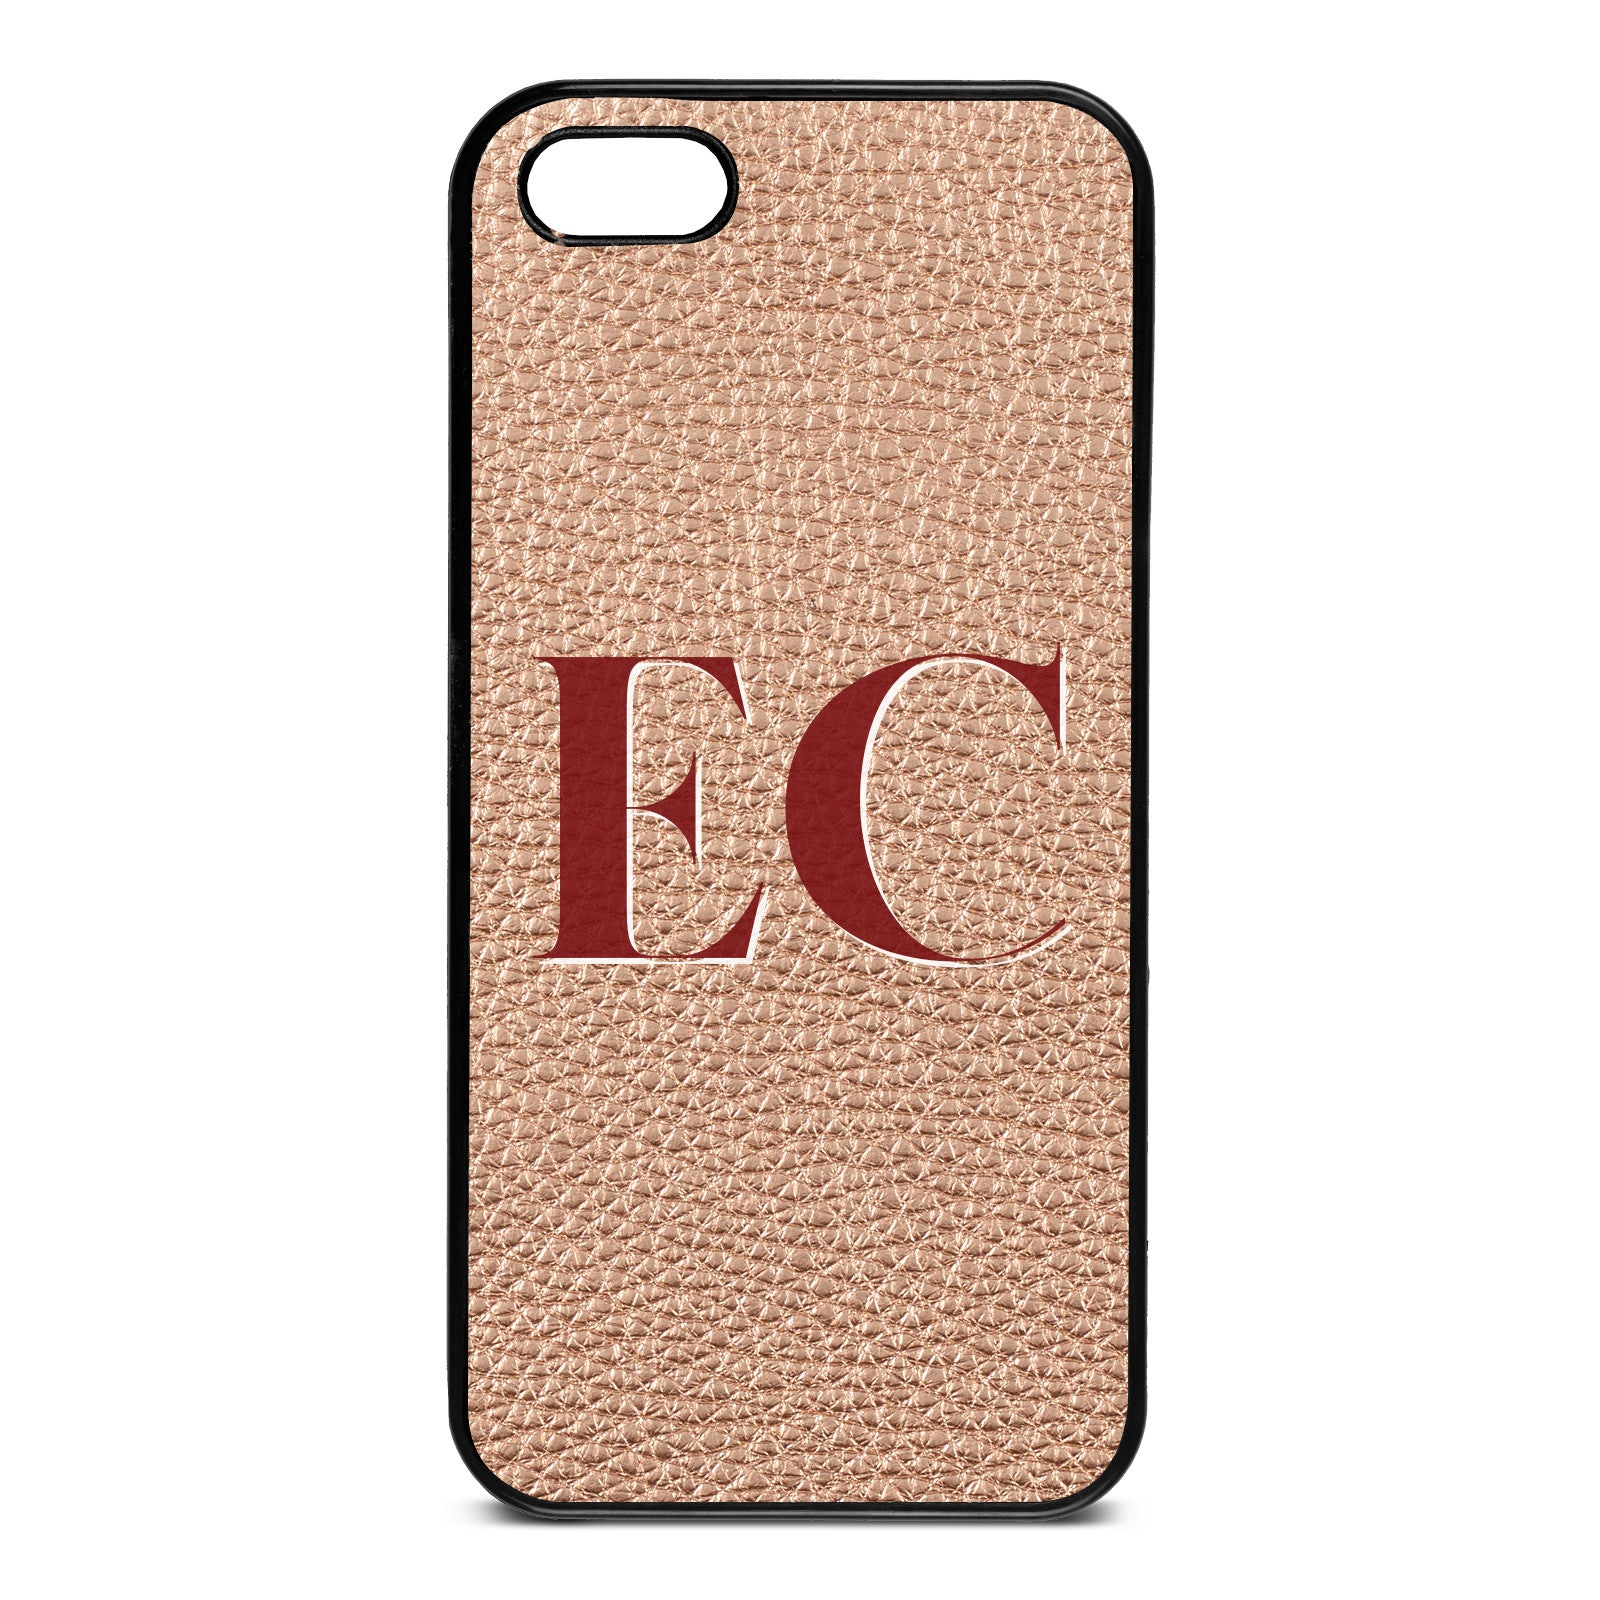 iPhone 5 Rose Gold Pebble Leather Case